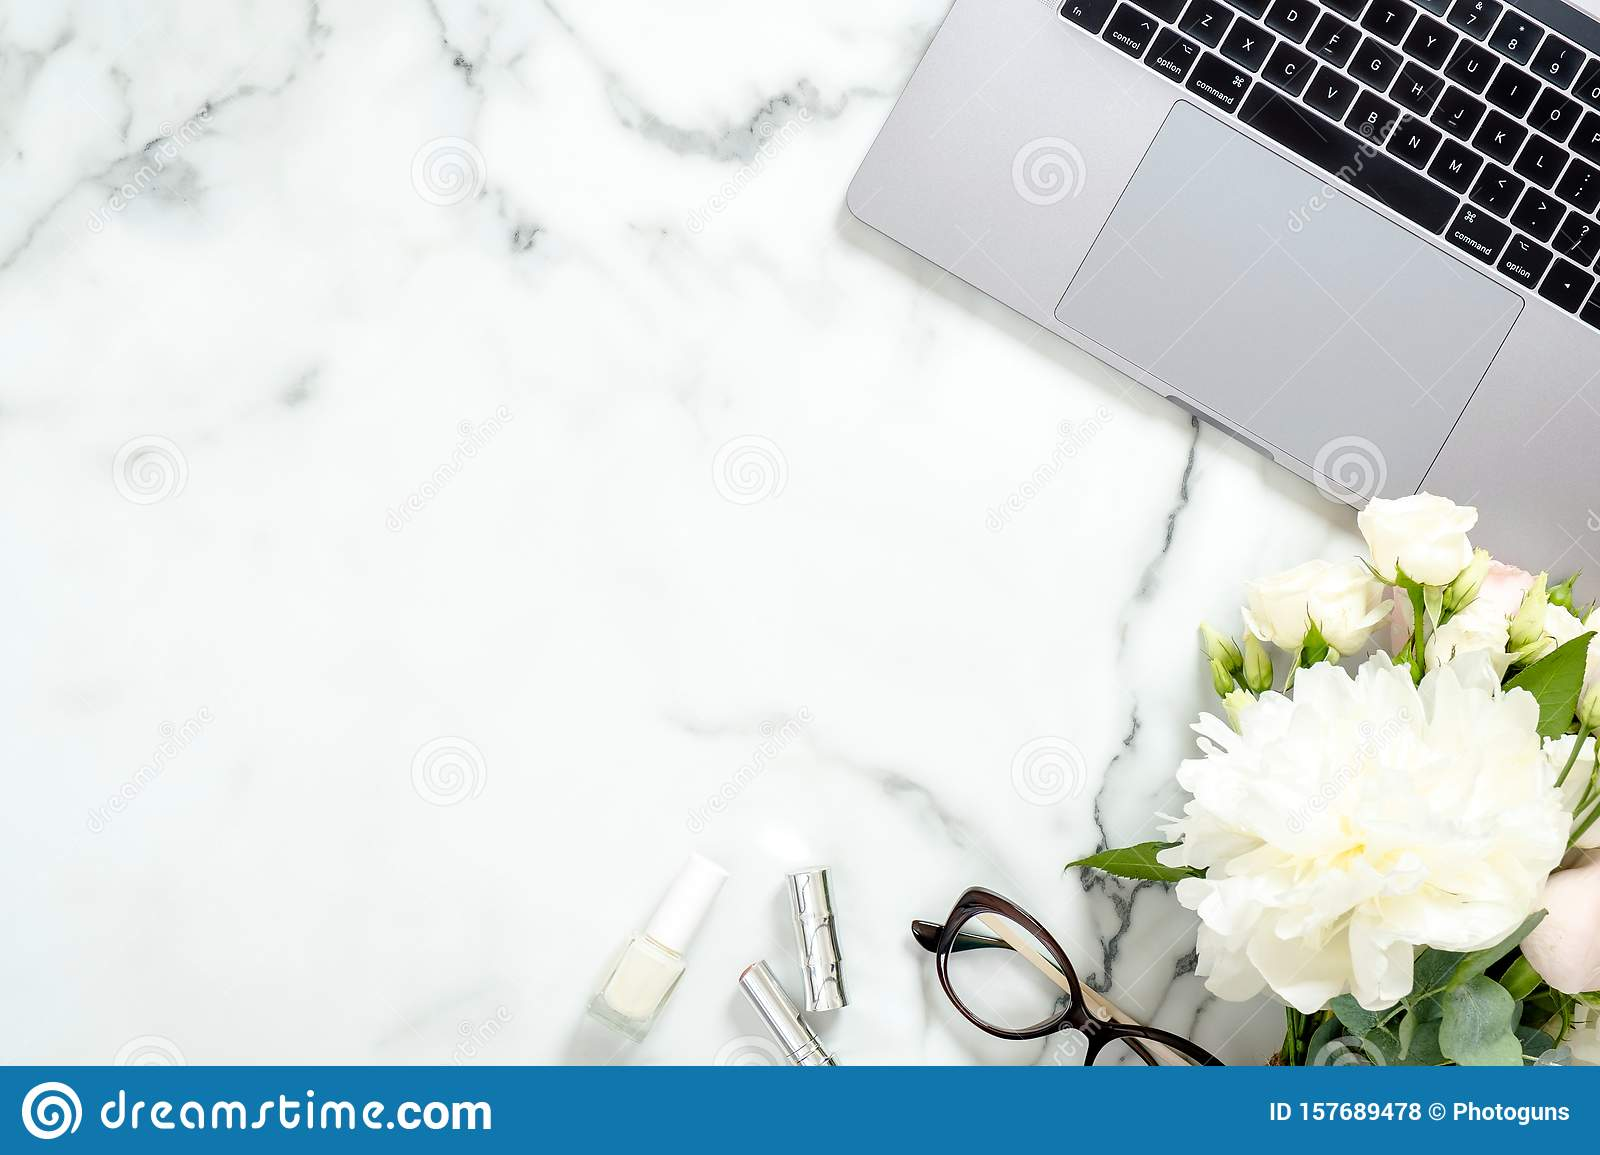 Flat Lay Home Office Desk Female Workspace With Laptop Computer White Flowers Bouquet Accessories Cosmetic On Marble Editorial Stock Photo Image Of Life Feminine 157689478